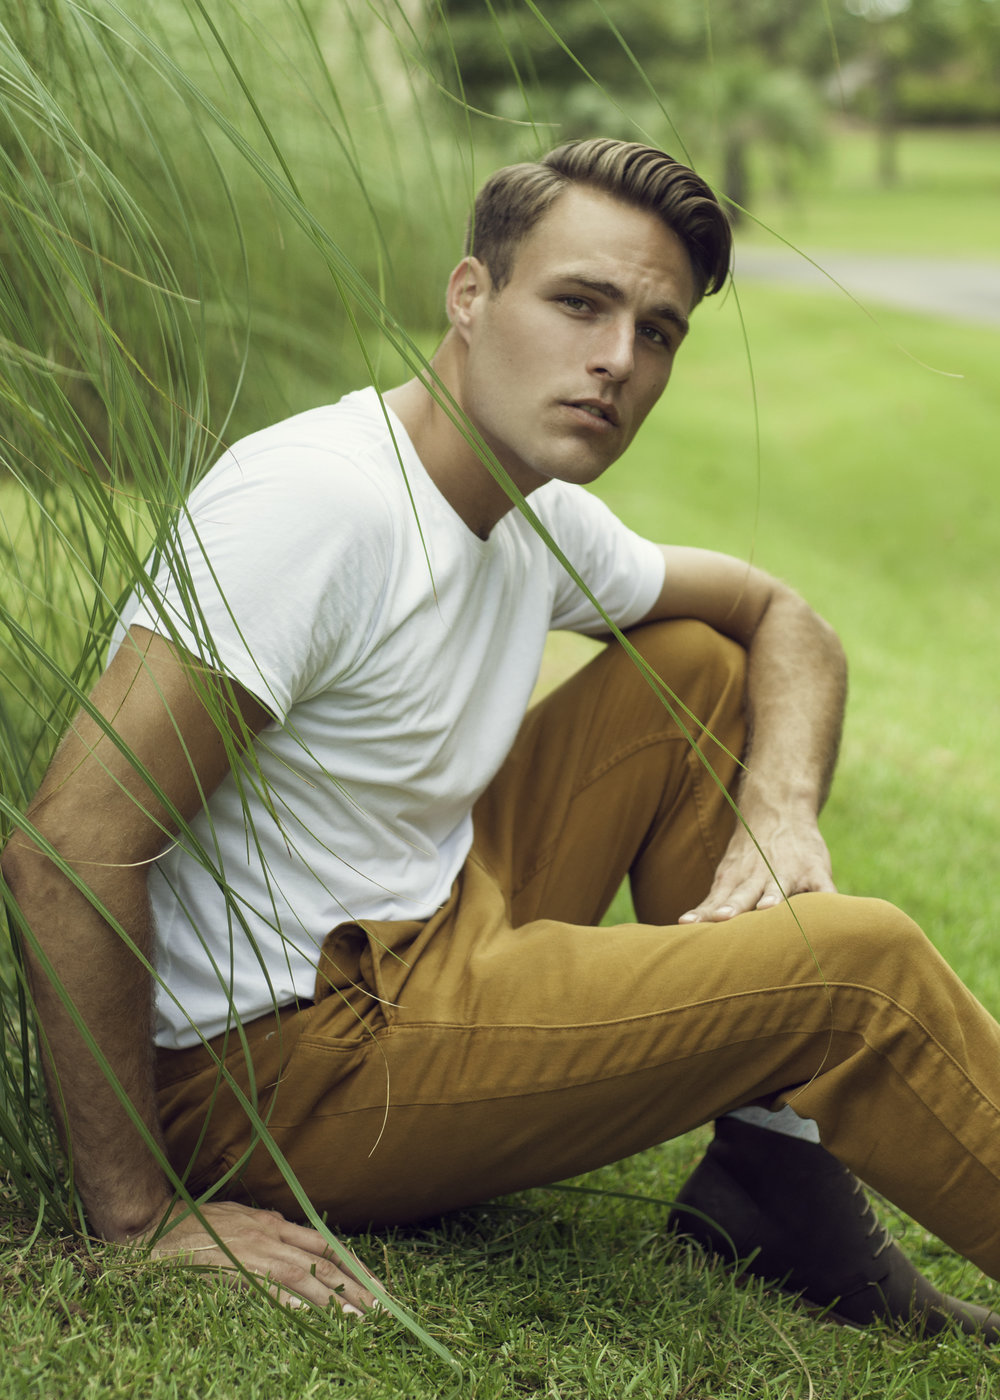 Model: Dylan Roberts  Agency: Click Models of Atlanta & Marilyn's Agency